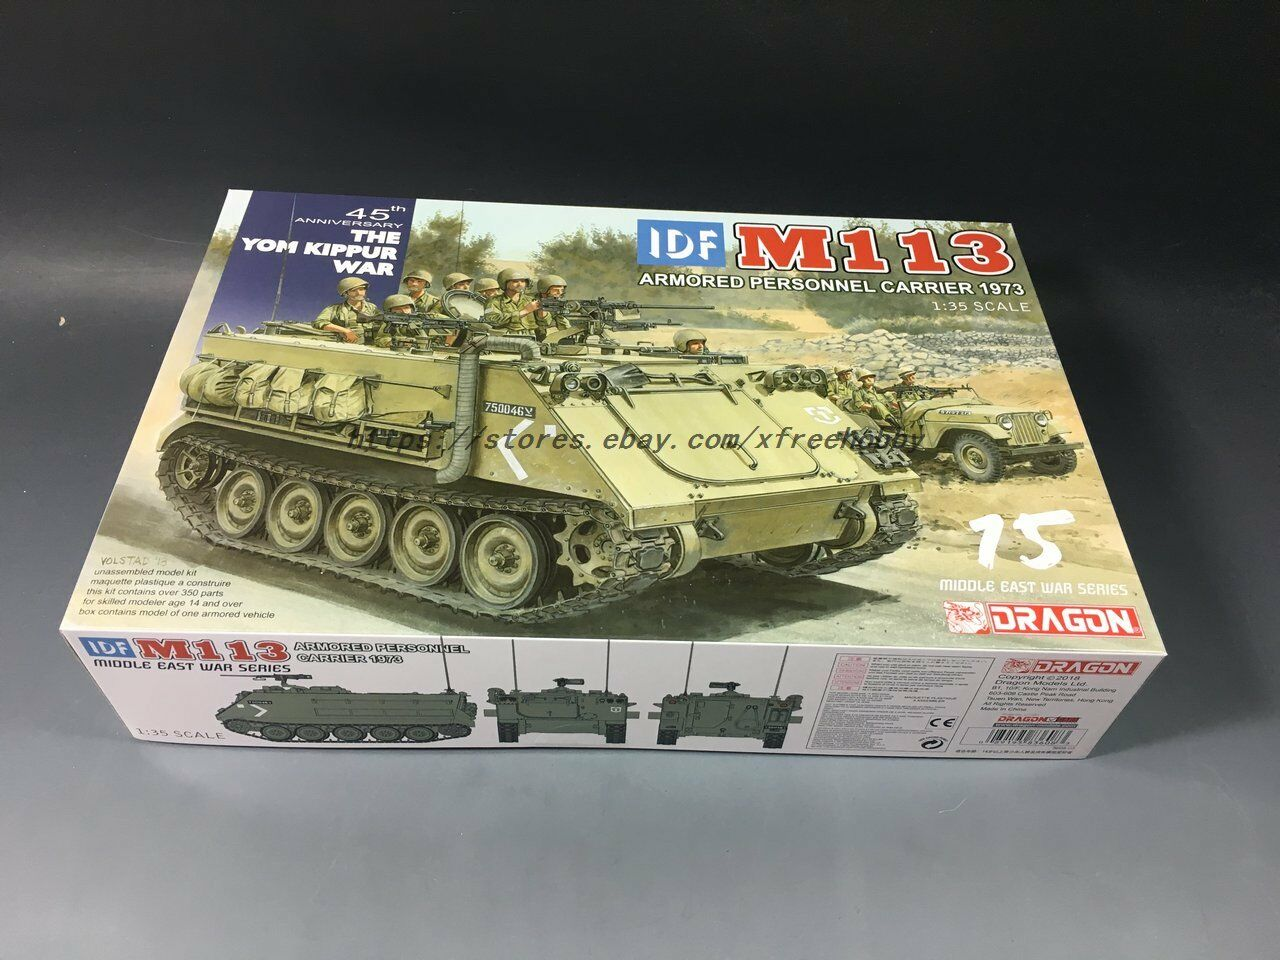 DRAGON 3608 1//35 IDF M113 MIDDLE EAST WAR SERIES ARMORED PERSONNEL CARRIER 1973